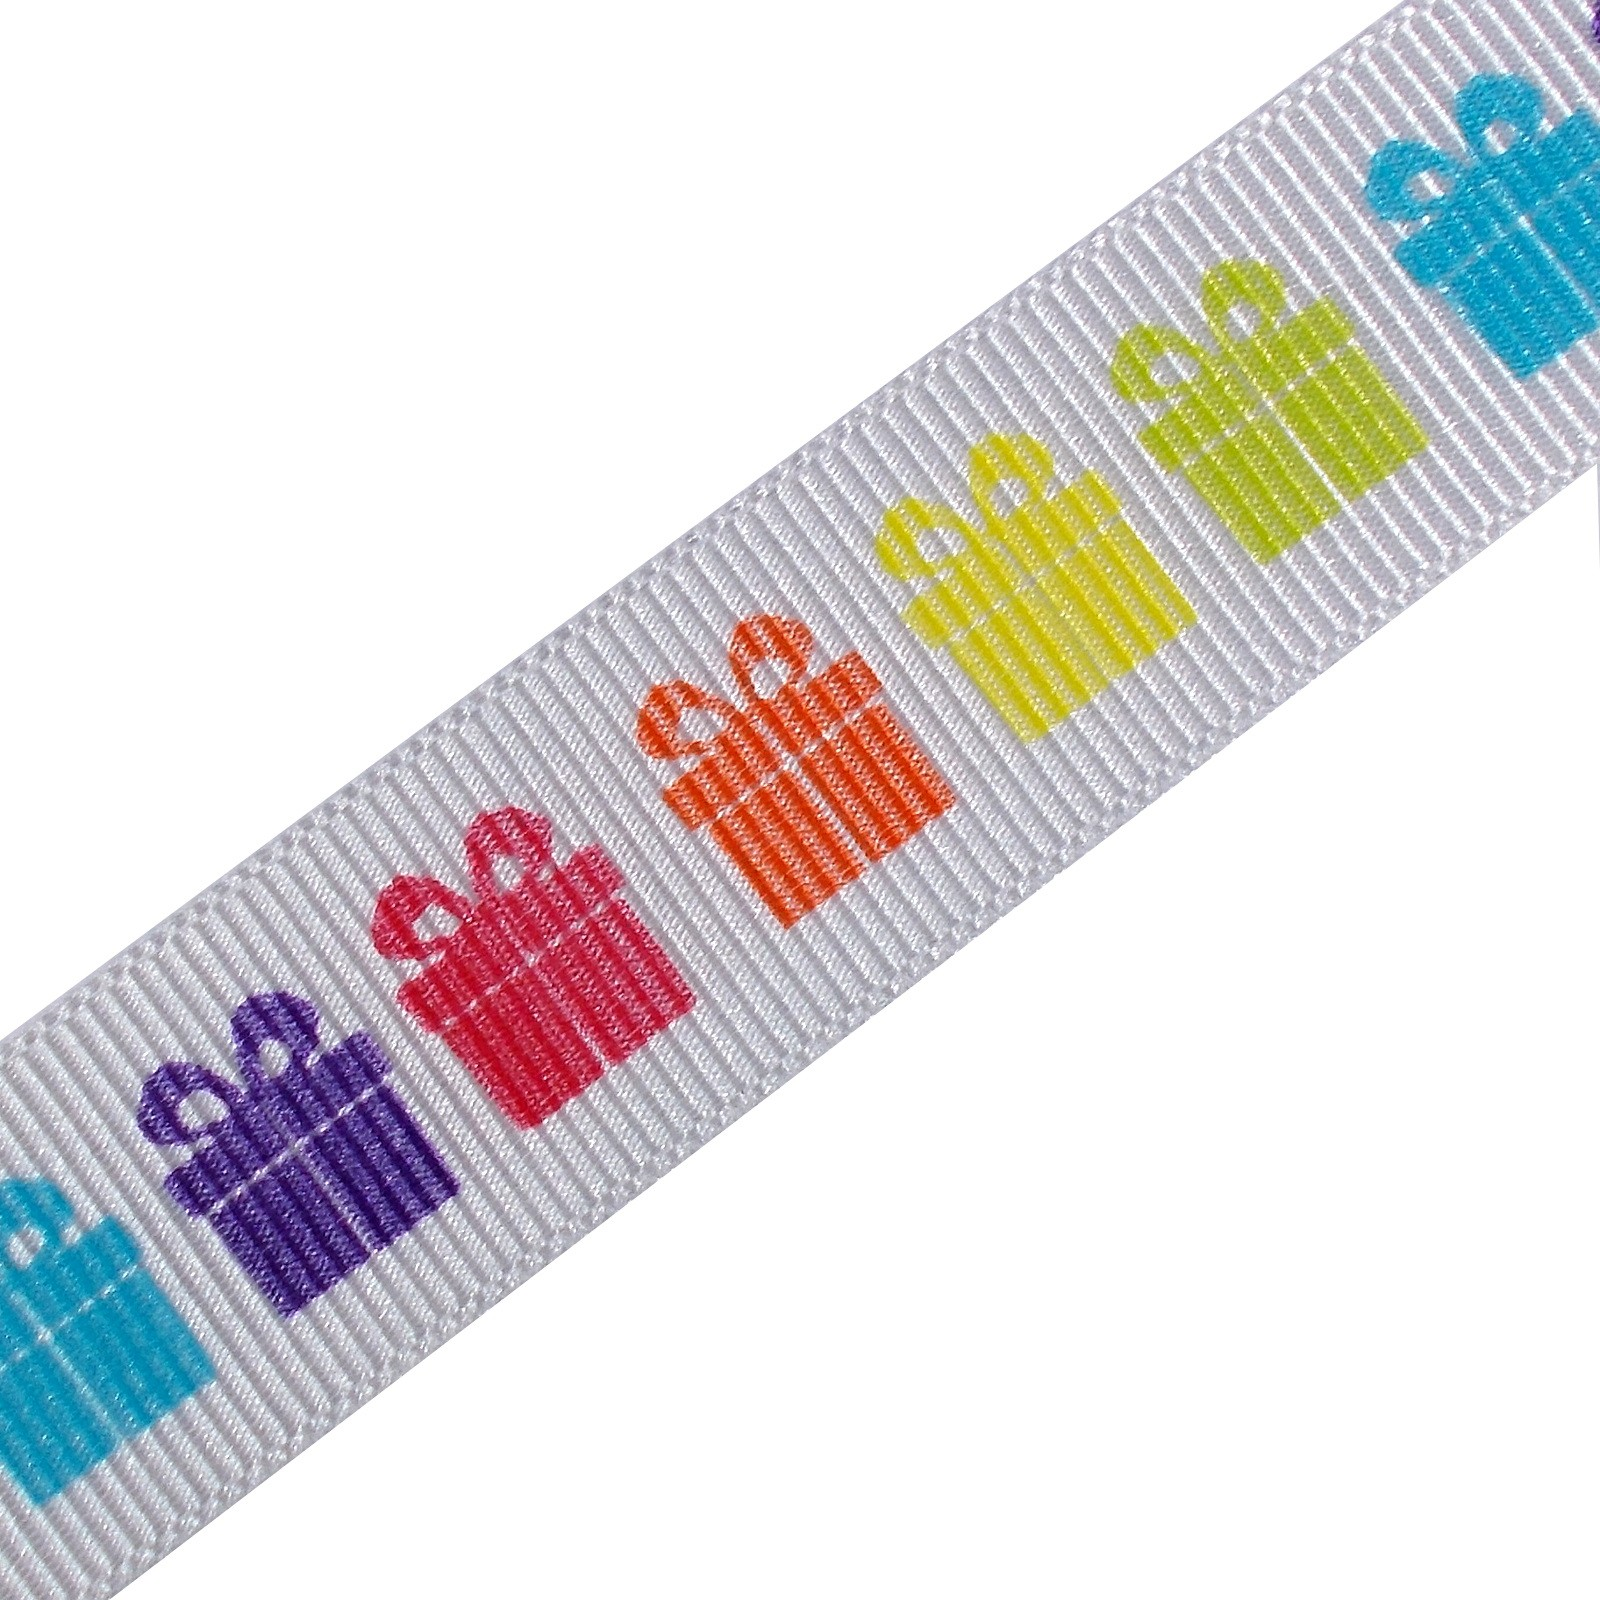 Berisfords Bright Rainbow Grosgrain Ribbon 25mm wide Parcel Gifts 3 metre length